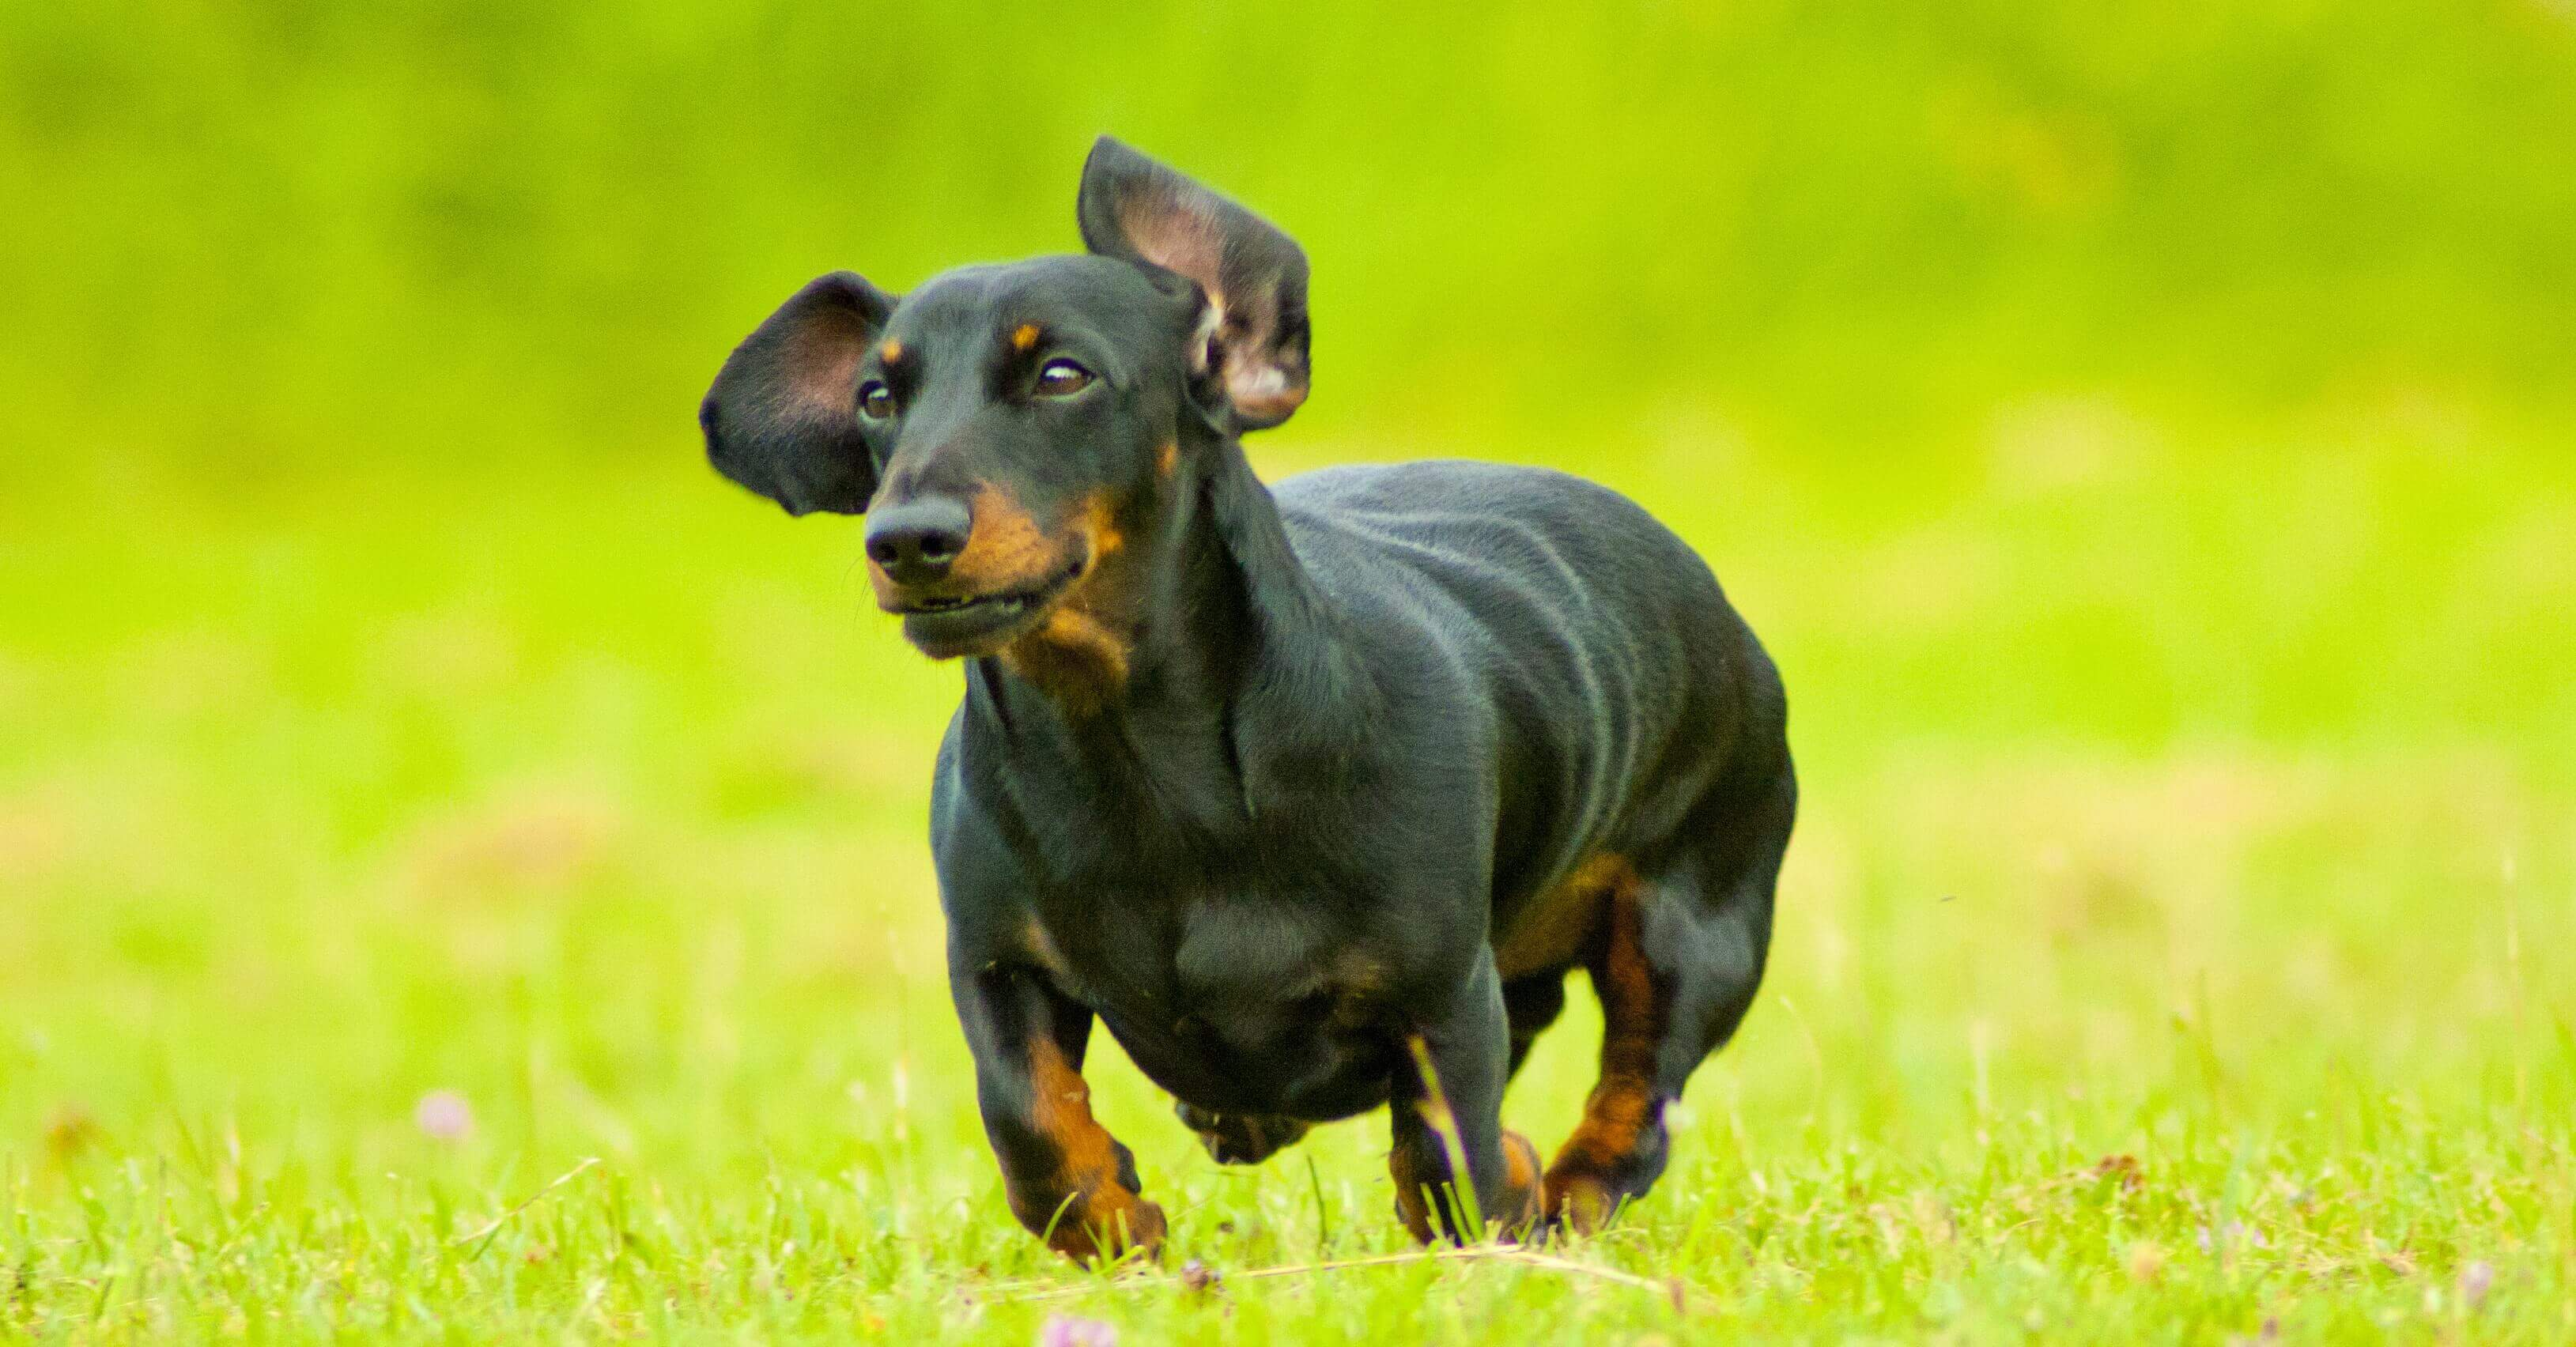 A sausage dog runs in a park, used in blog 4 reasons taking breaks make your brain work